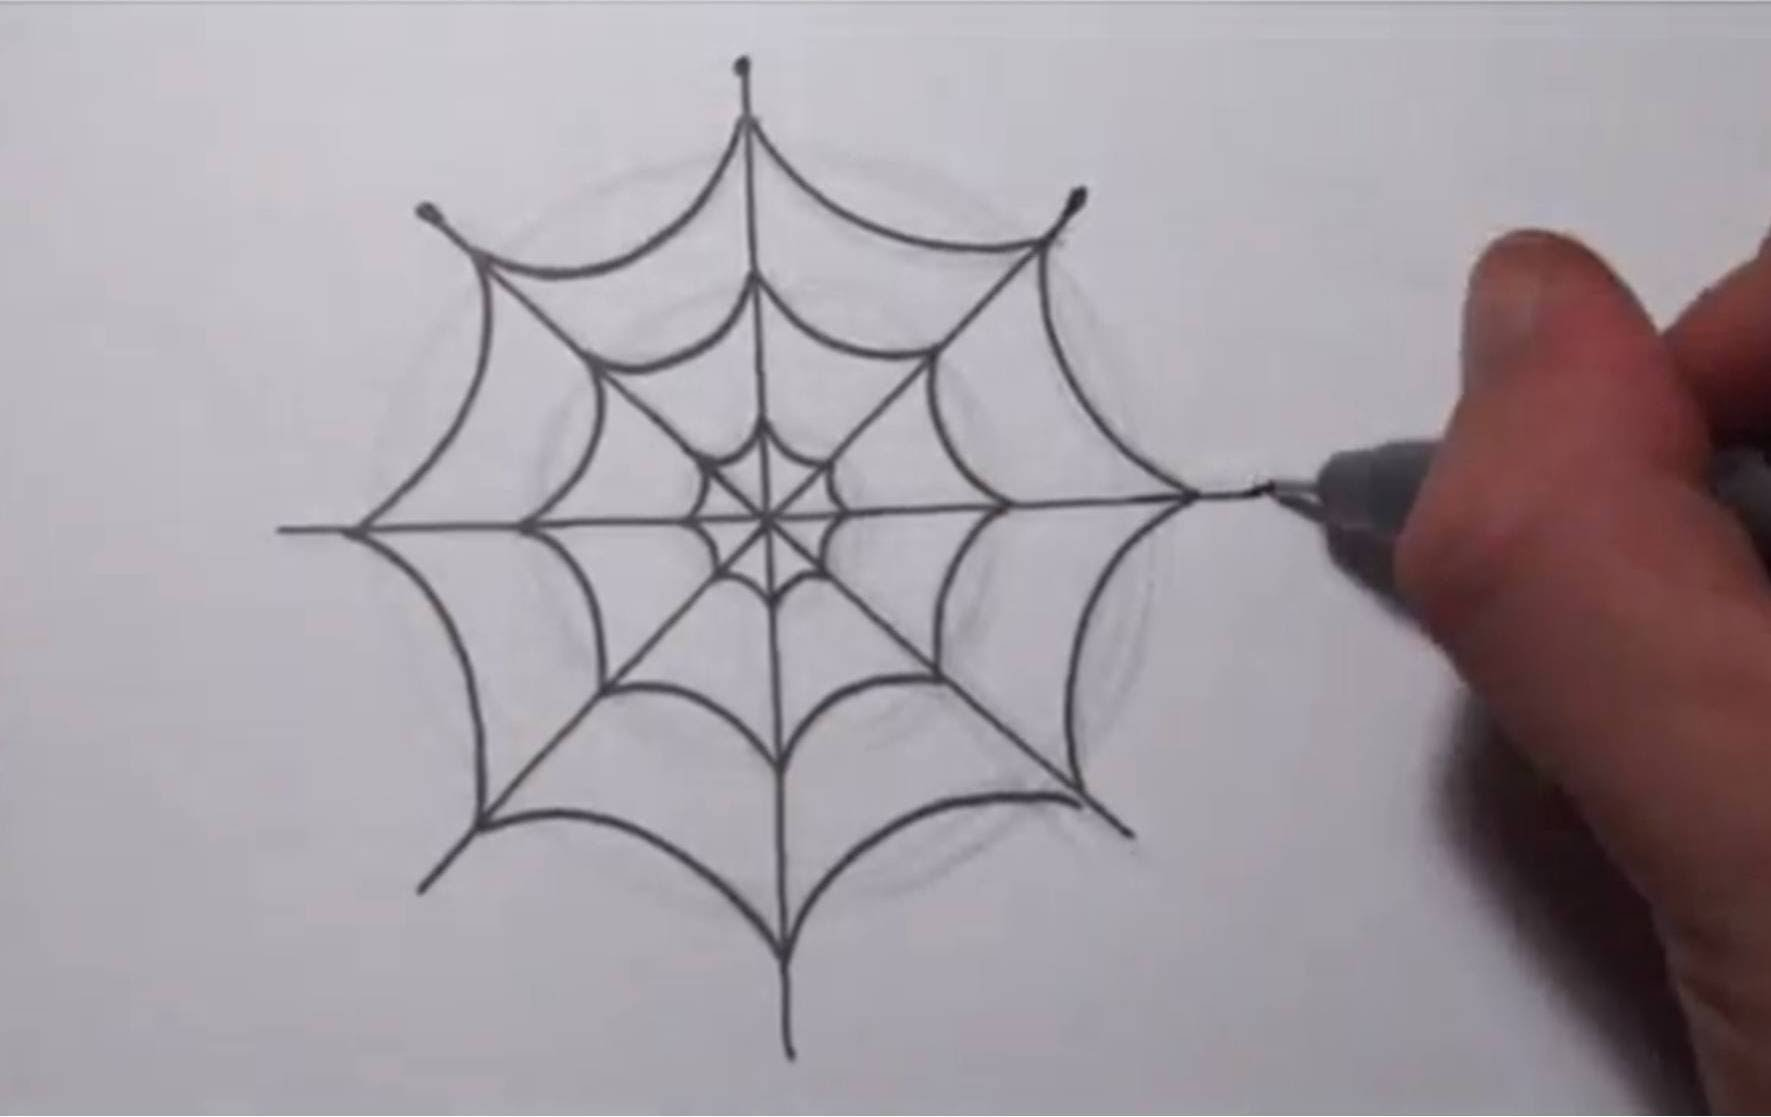 Drawn spider web How Web Simple Spider a